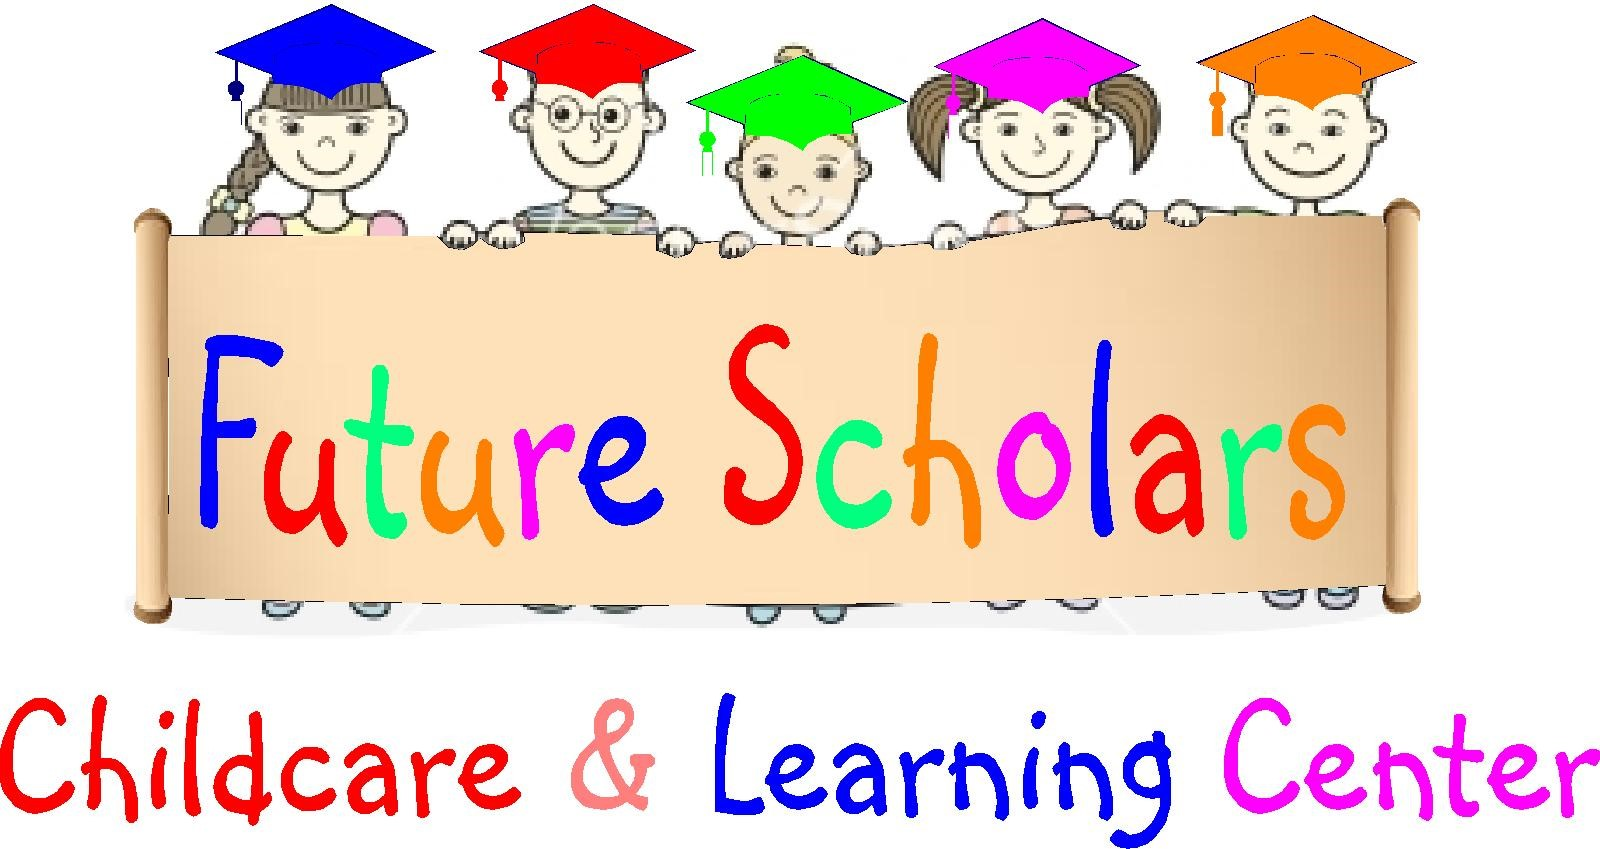 Future Scholars Childcare & Learning Center